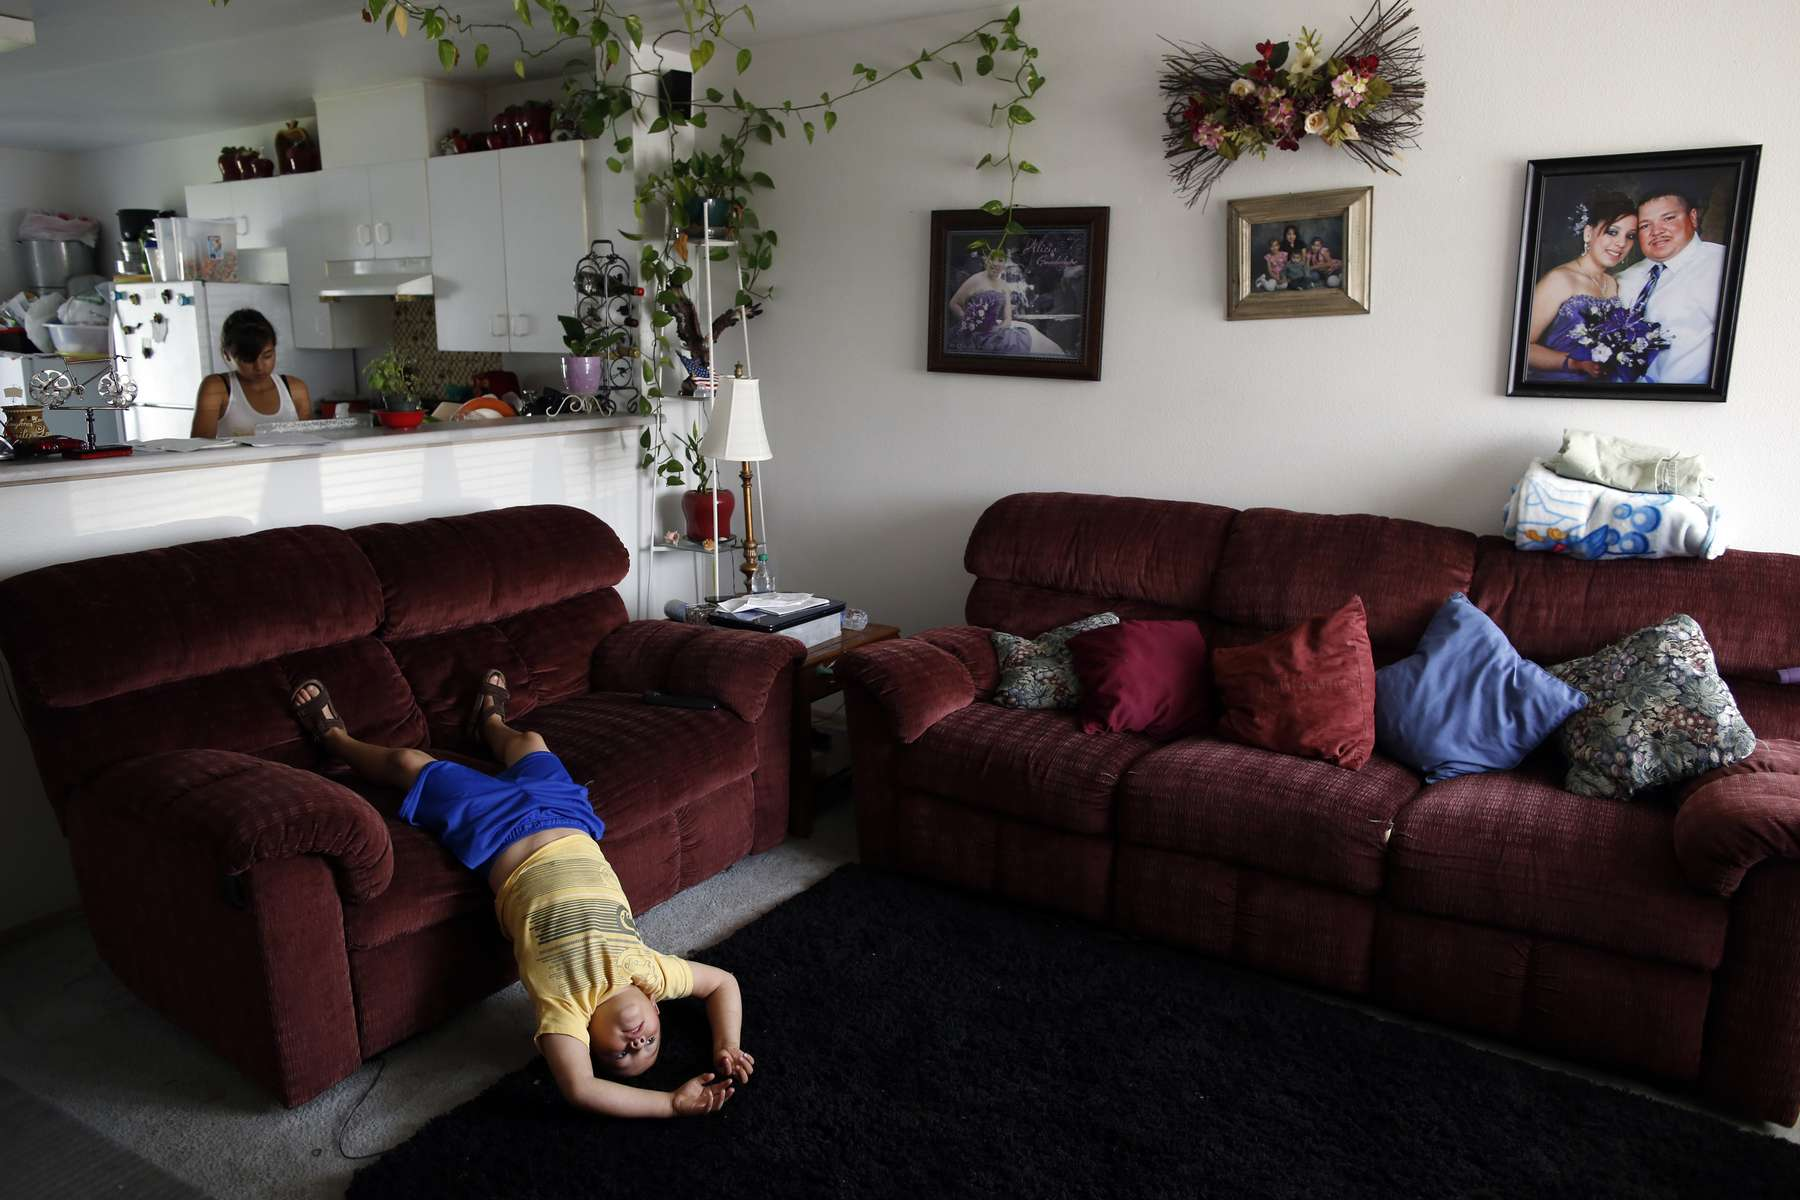 Eloy Cervantes, Jr., 6, plays while his older sister, Itai, 13, cleans the house and takes care of chores while their parents are at work in Mattawa, Wash., Aug. 23, 2013.Their parents Eloy and Flor Cervantes, have been in America for almost 20 years. Three of their four children were born in the United States and citizenship — or the lack of it — is constantly threatening to separate them. They say citizenship would be a solution for what has become a permanent way of life.